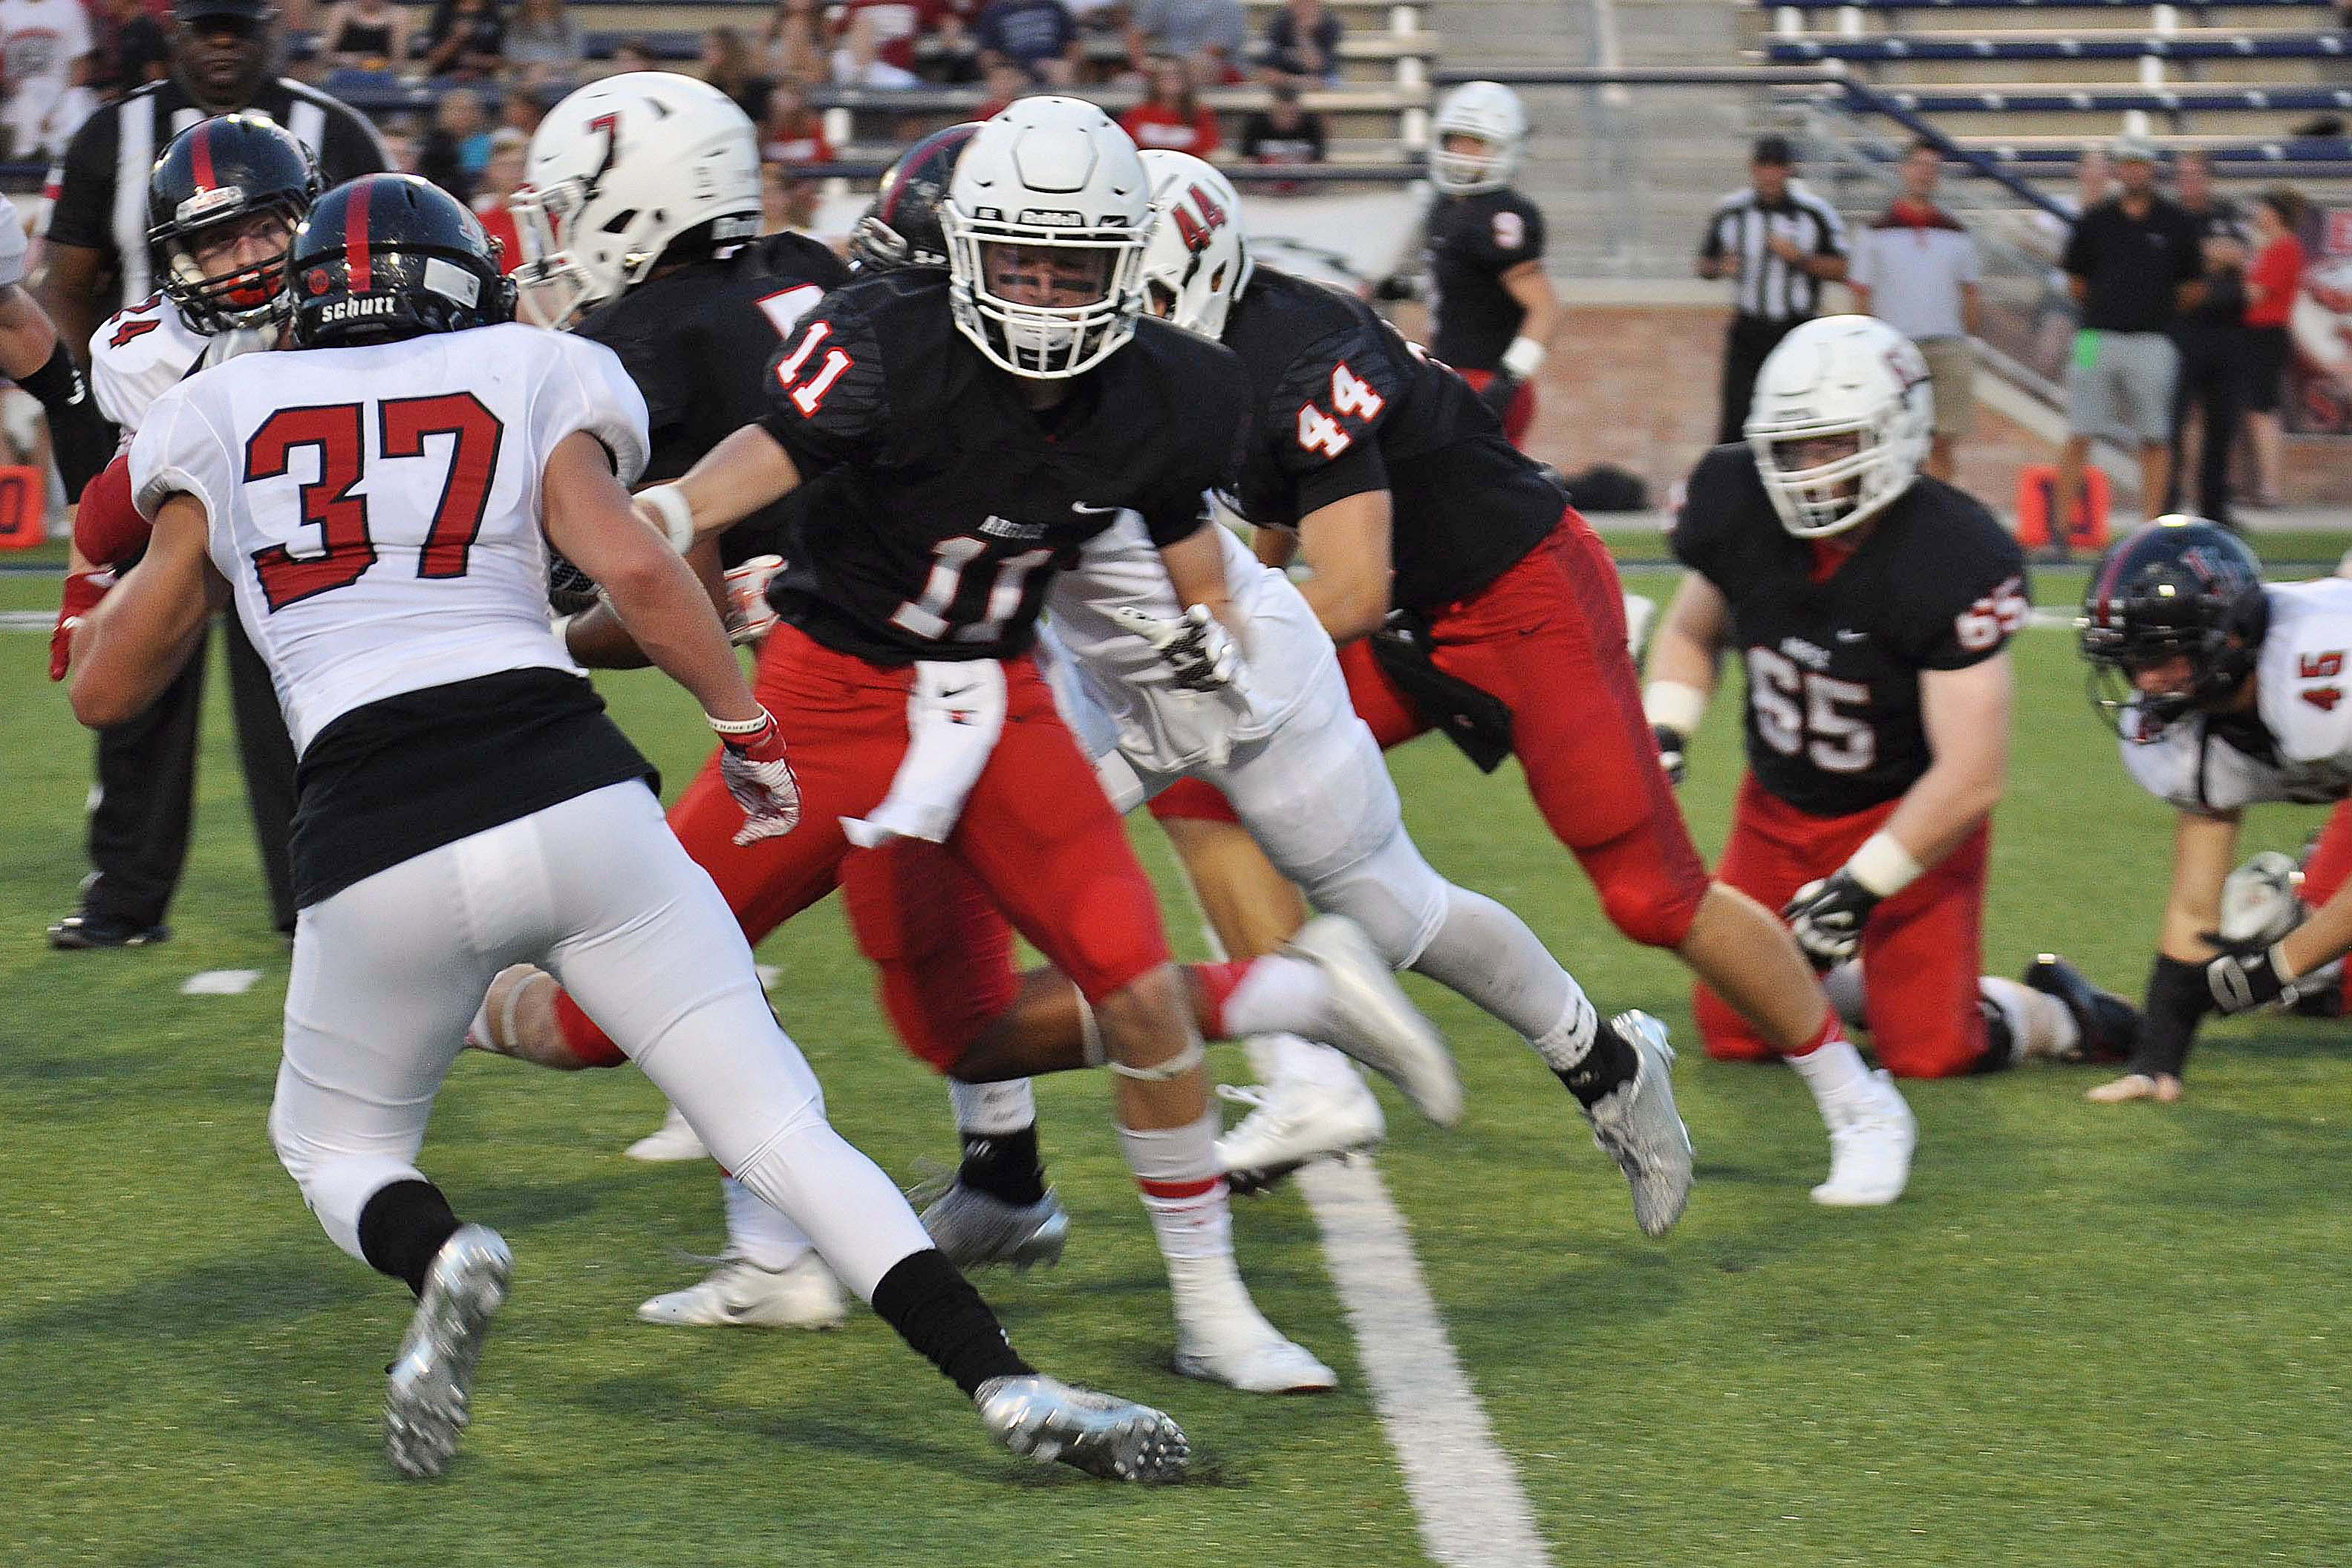 Junior Landon McDermott attempts to tackle an Argyle player during the Tom Landry Classic at Allen Eagle Stadium.